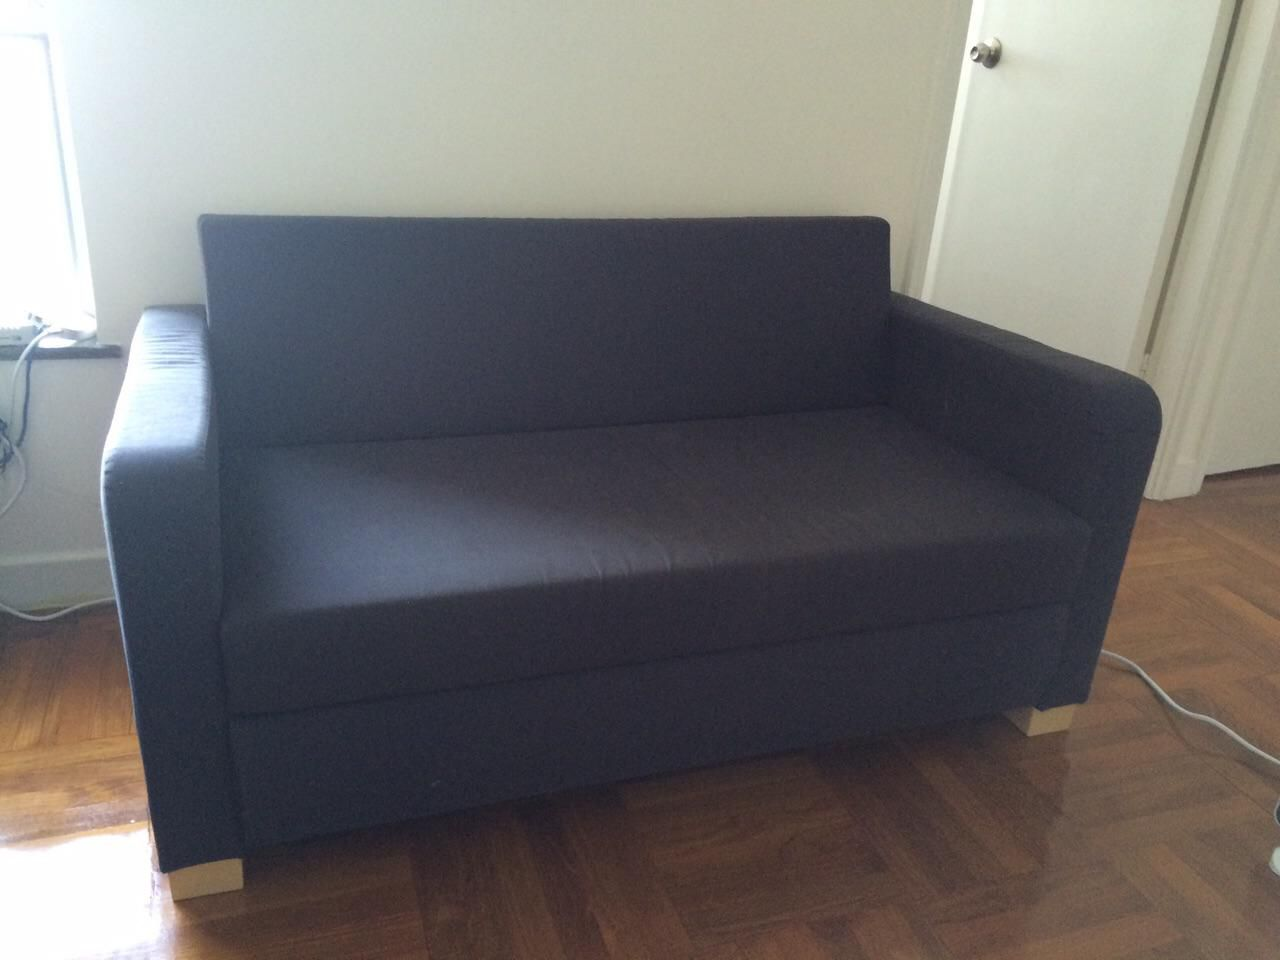 Ikea sofa bed for 400 for Sofa bed 400